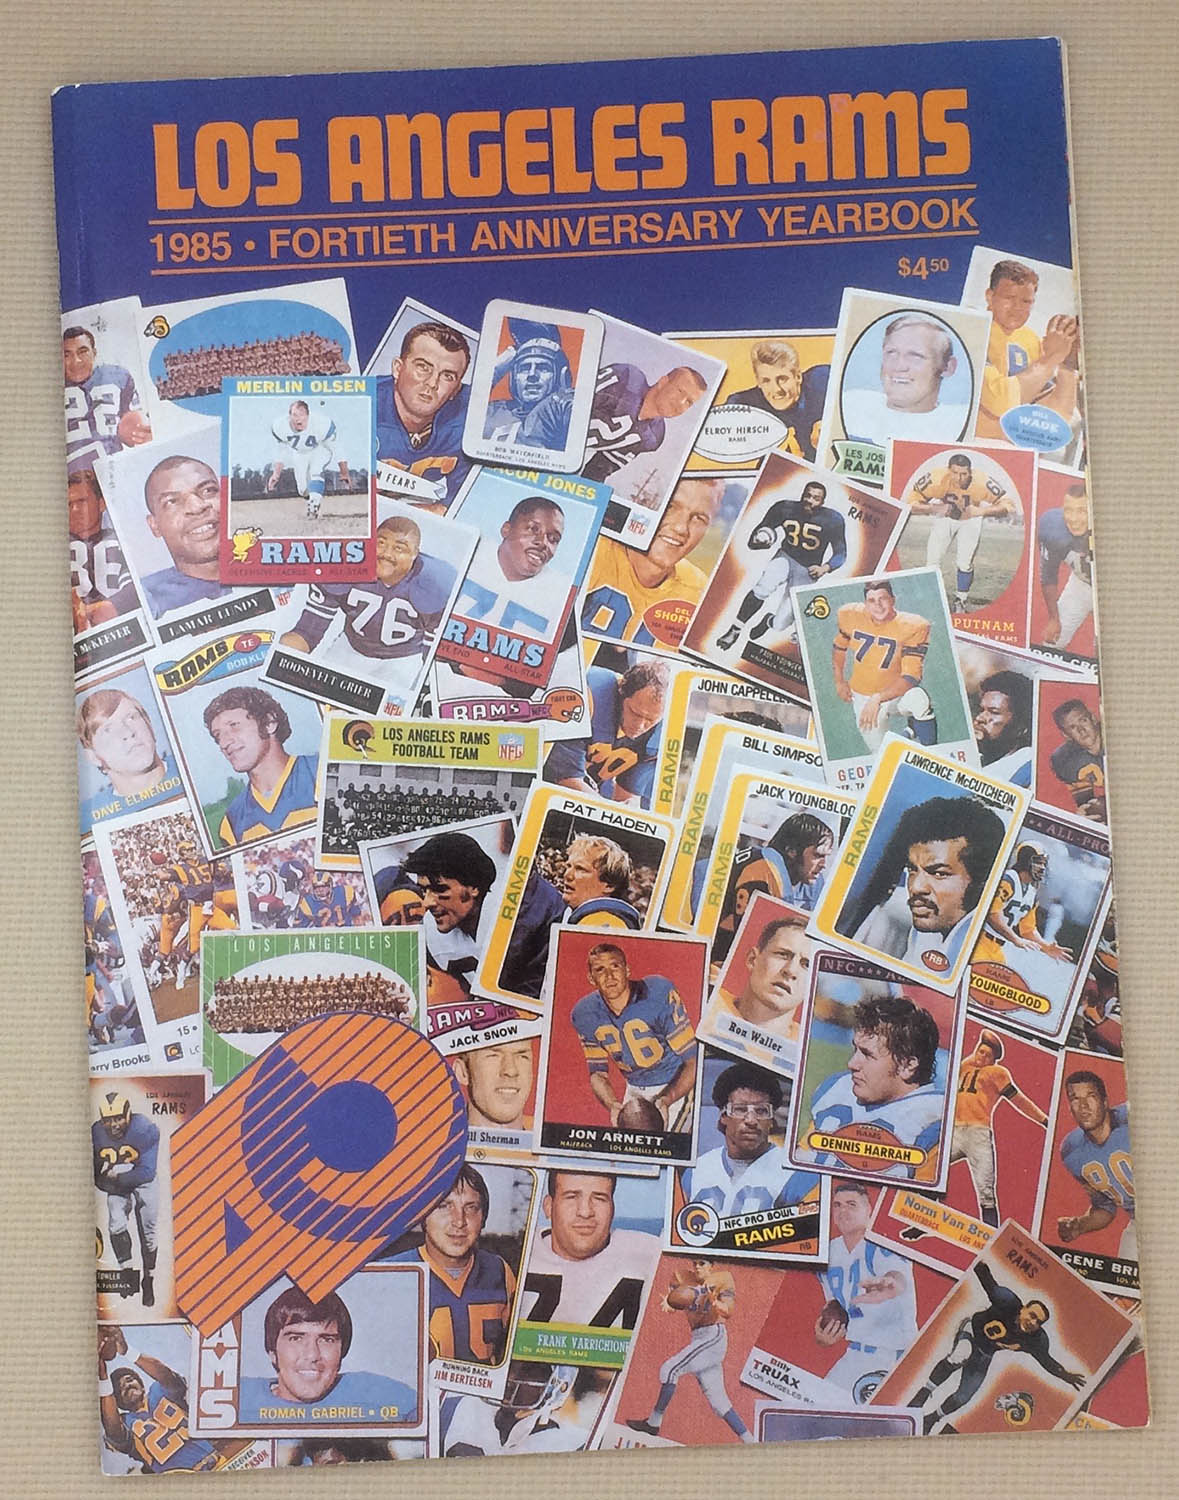 Los Angeles Rams 40th Anniversary Yearbook